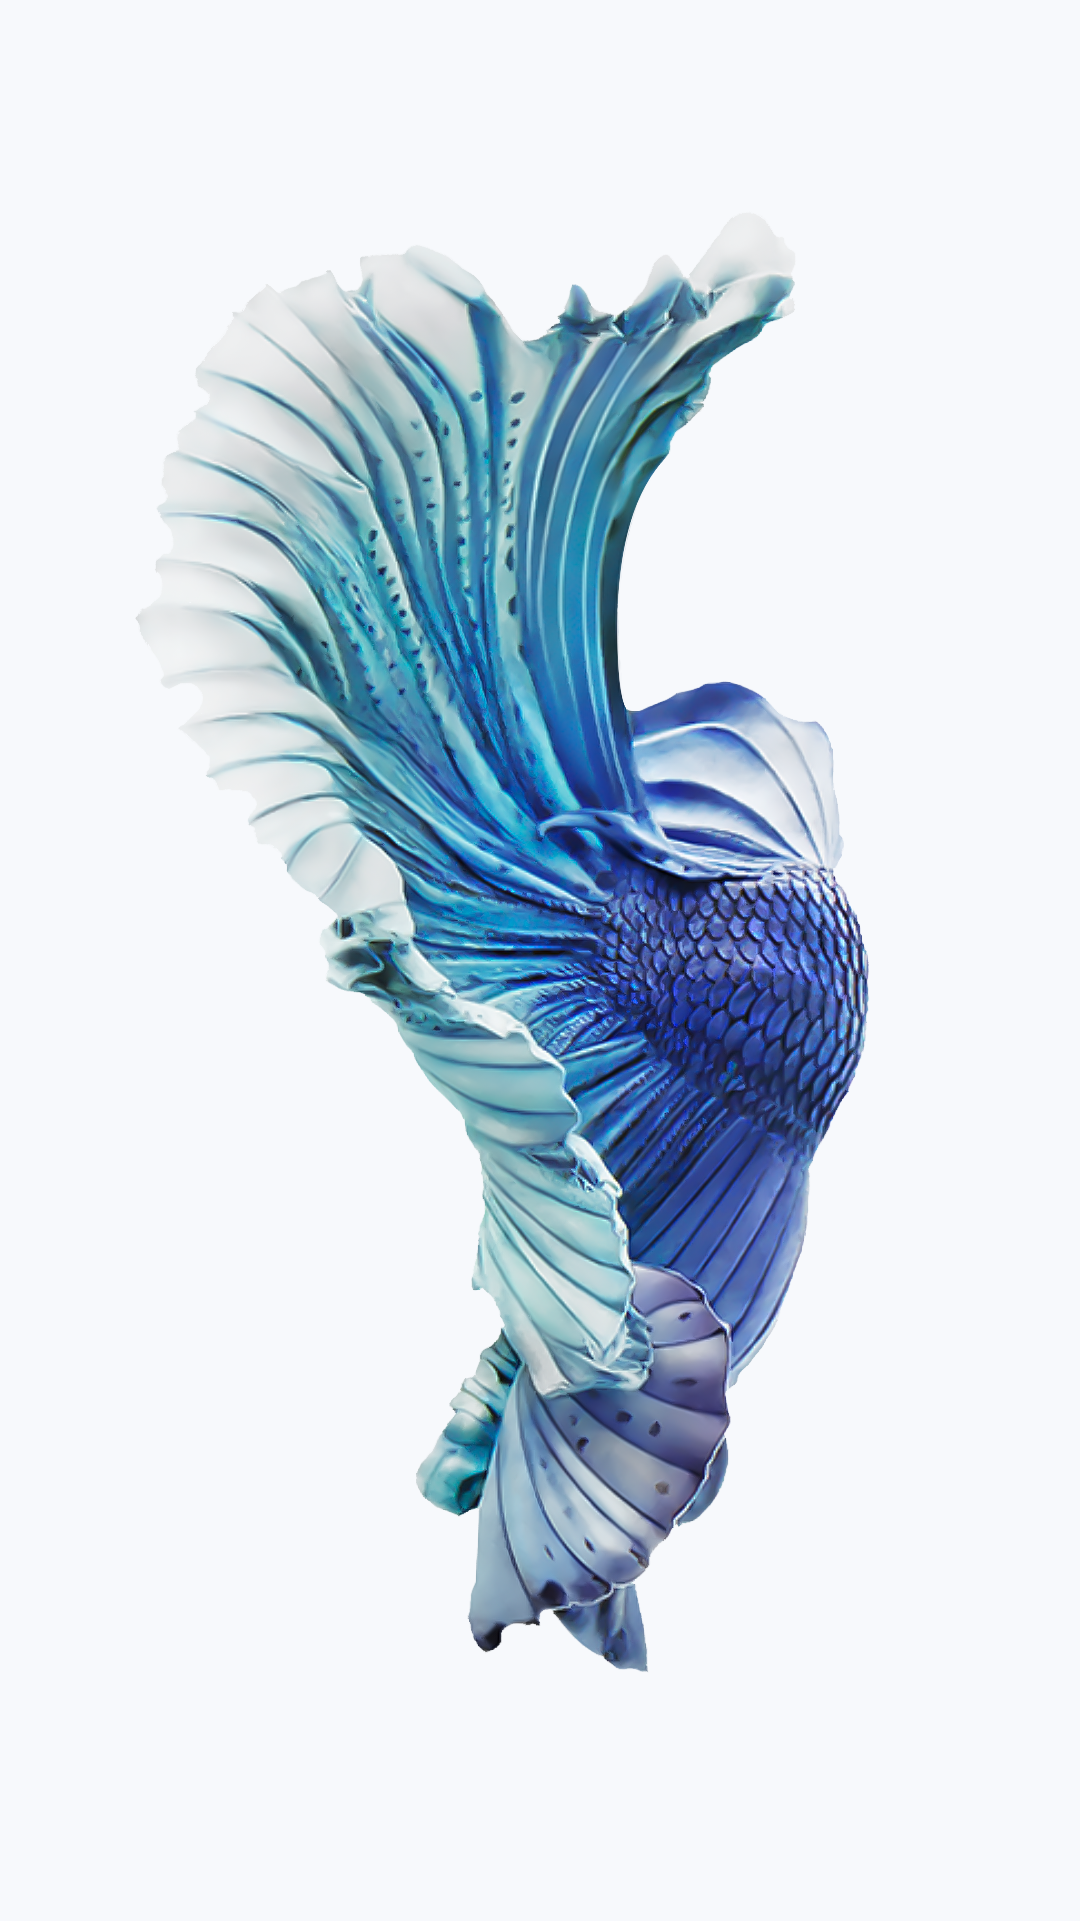 apple betta fish live wallpaper